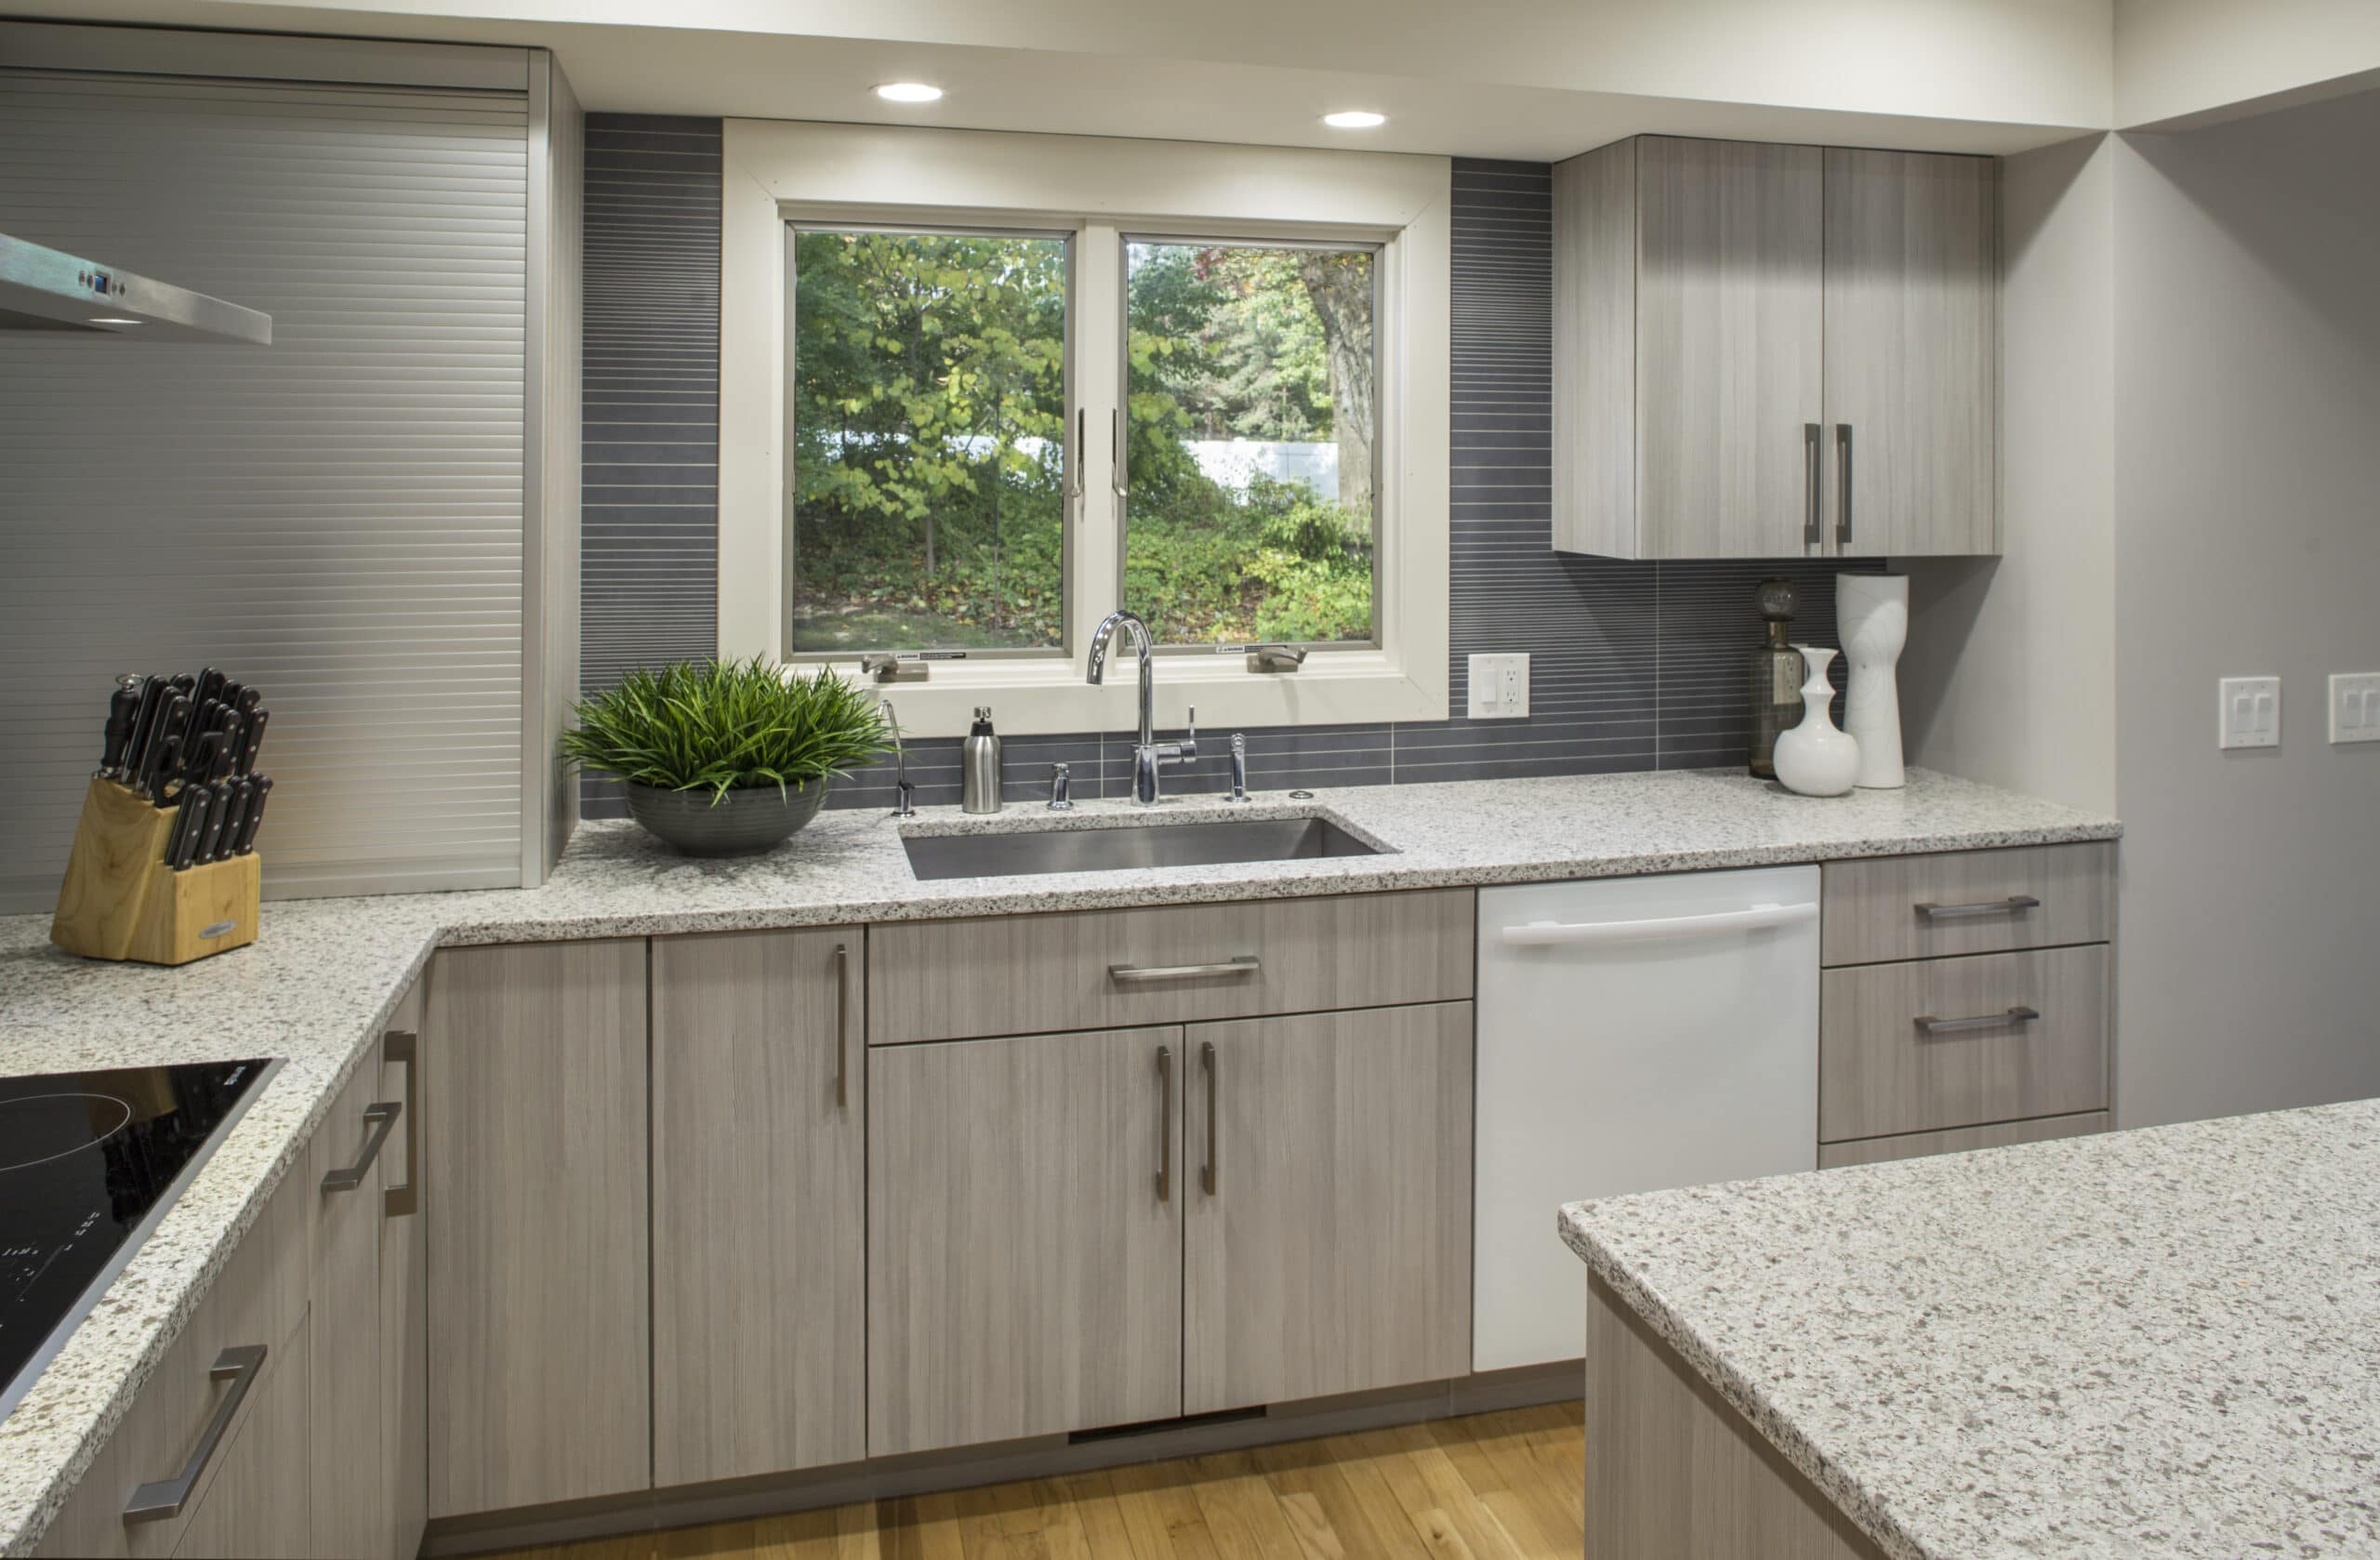 Trukitchens Custom Kitchen Solutions In Grand Rapids Mi